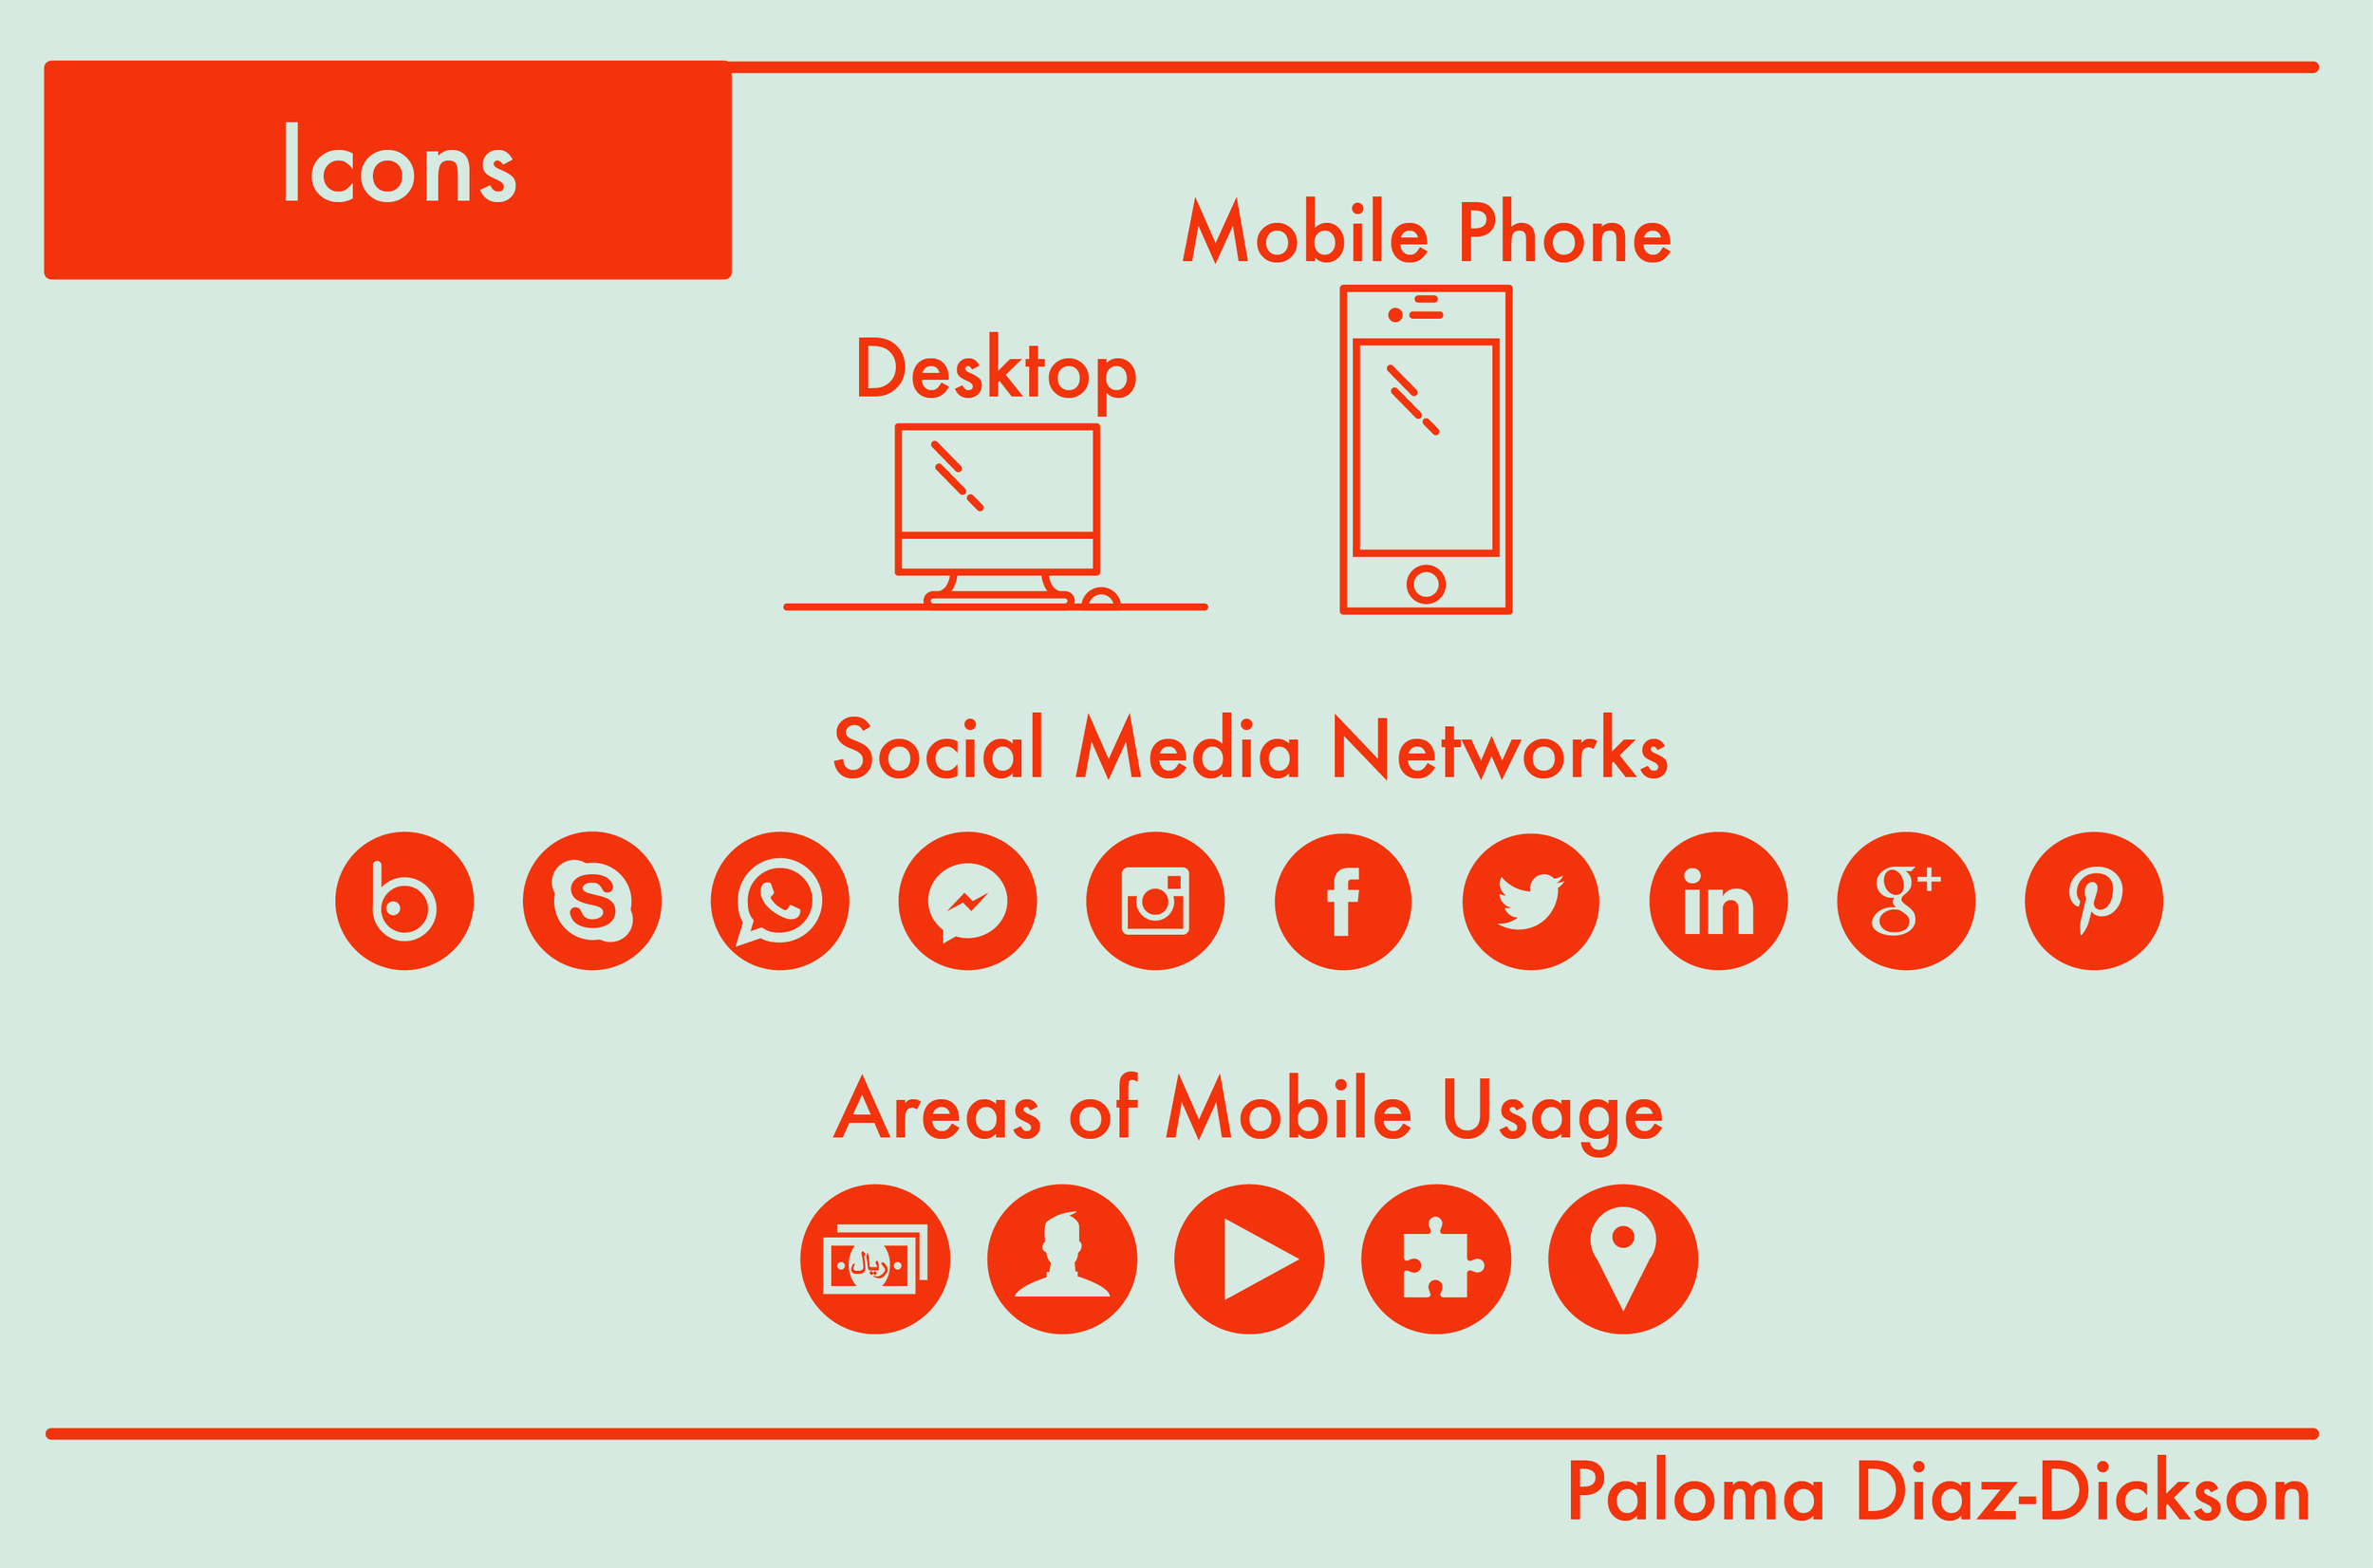 Icons created for an infographic assignment